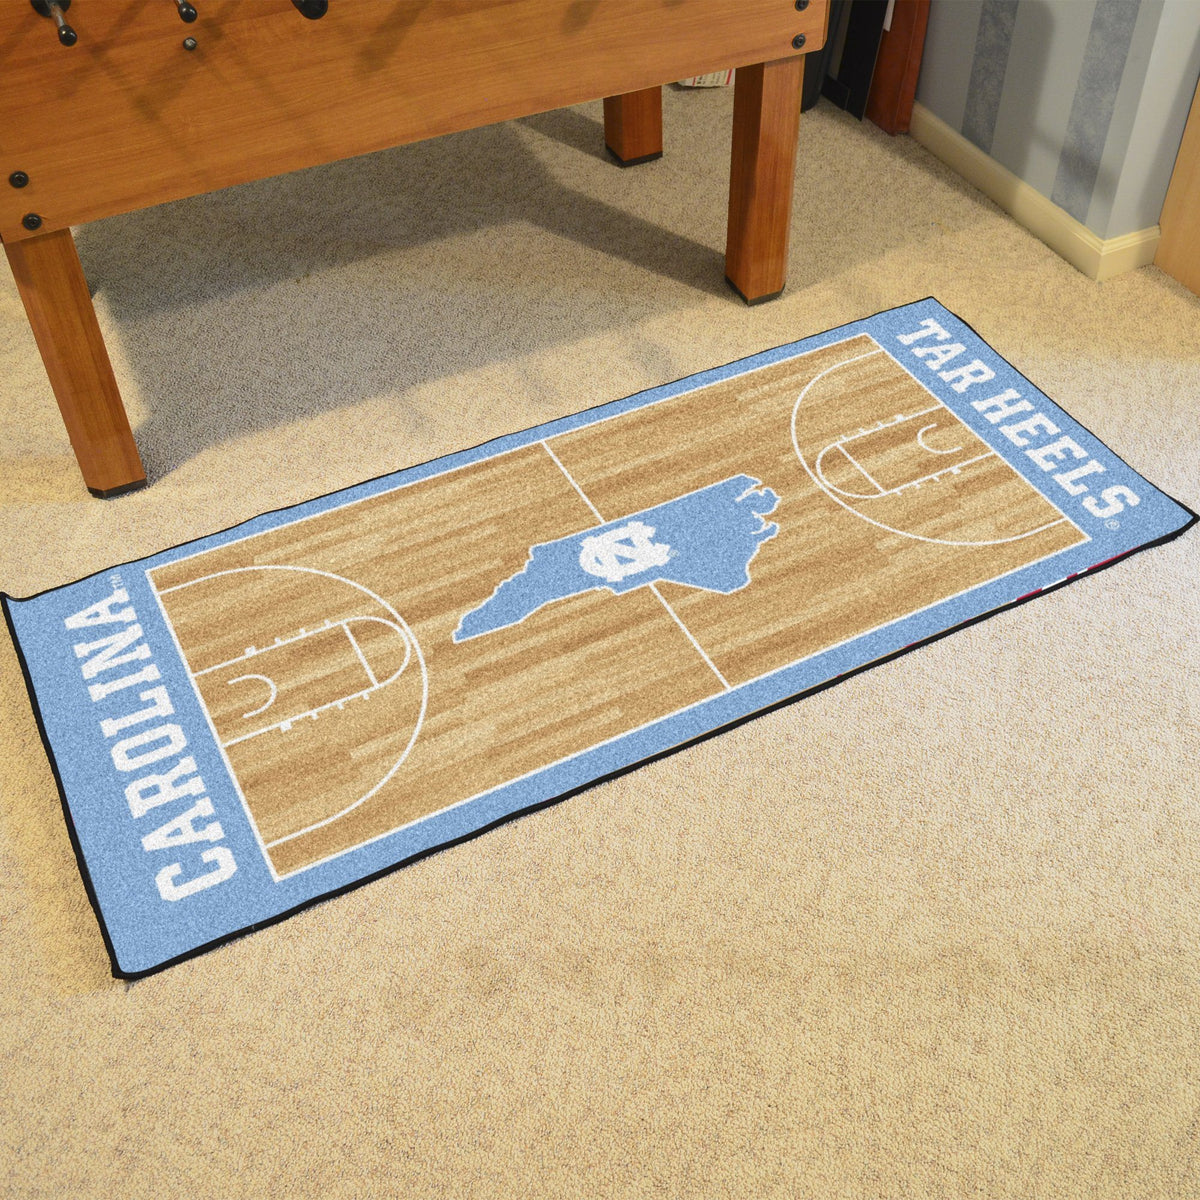 Collegiate - NCAA Basketball Runner Collegiate Mats, Rectangular Mats, NCAA Basketball Runner, Collegiate, Home Fan Mats North Carolina